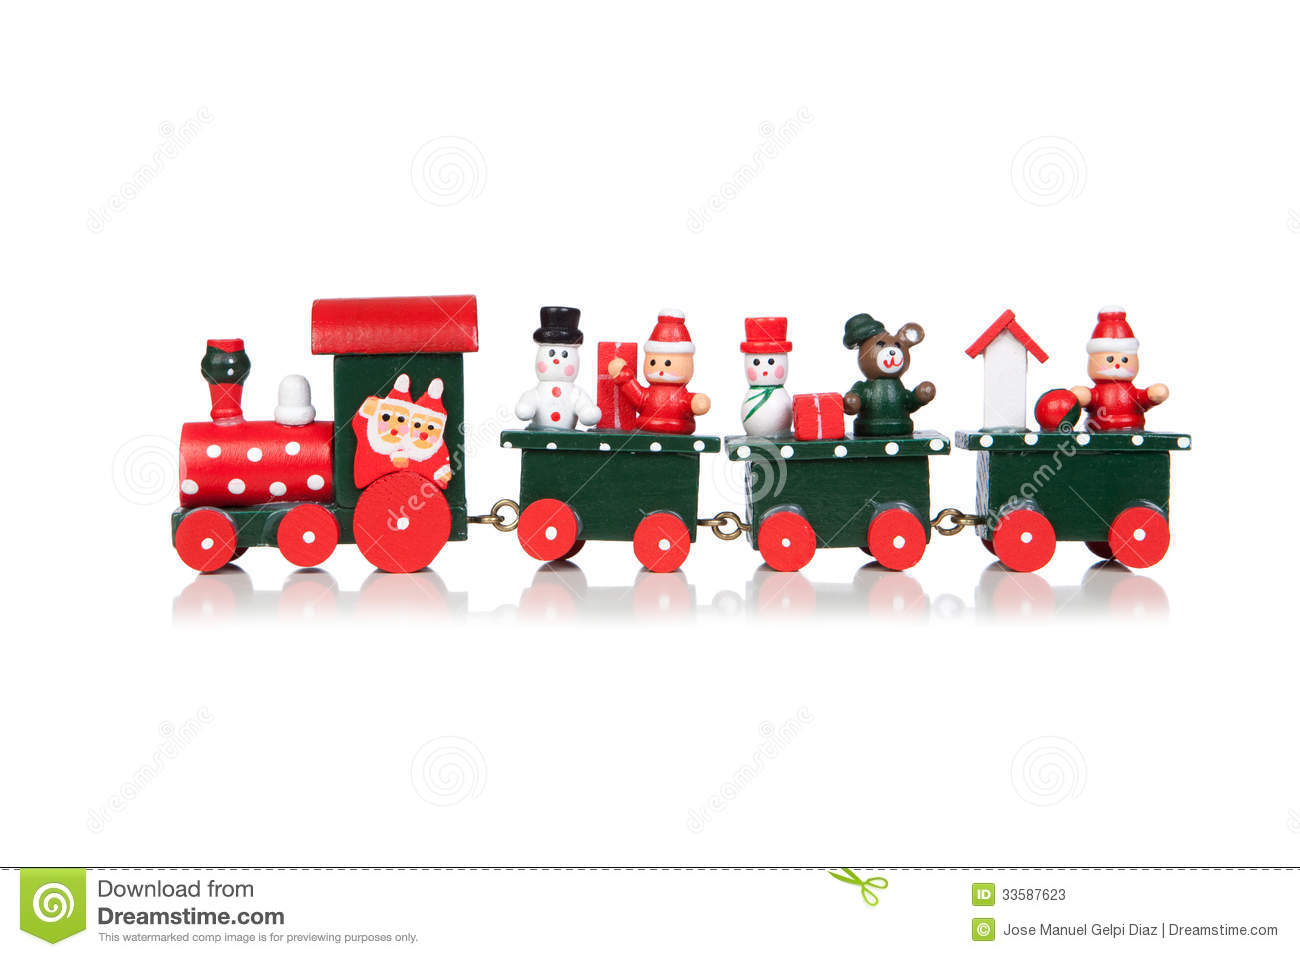 Christmas toy train set 9625